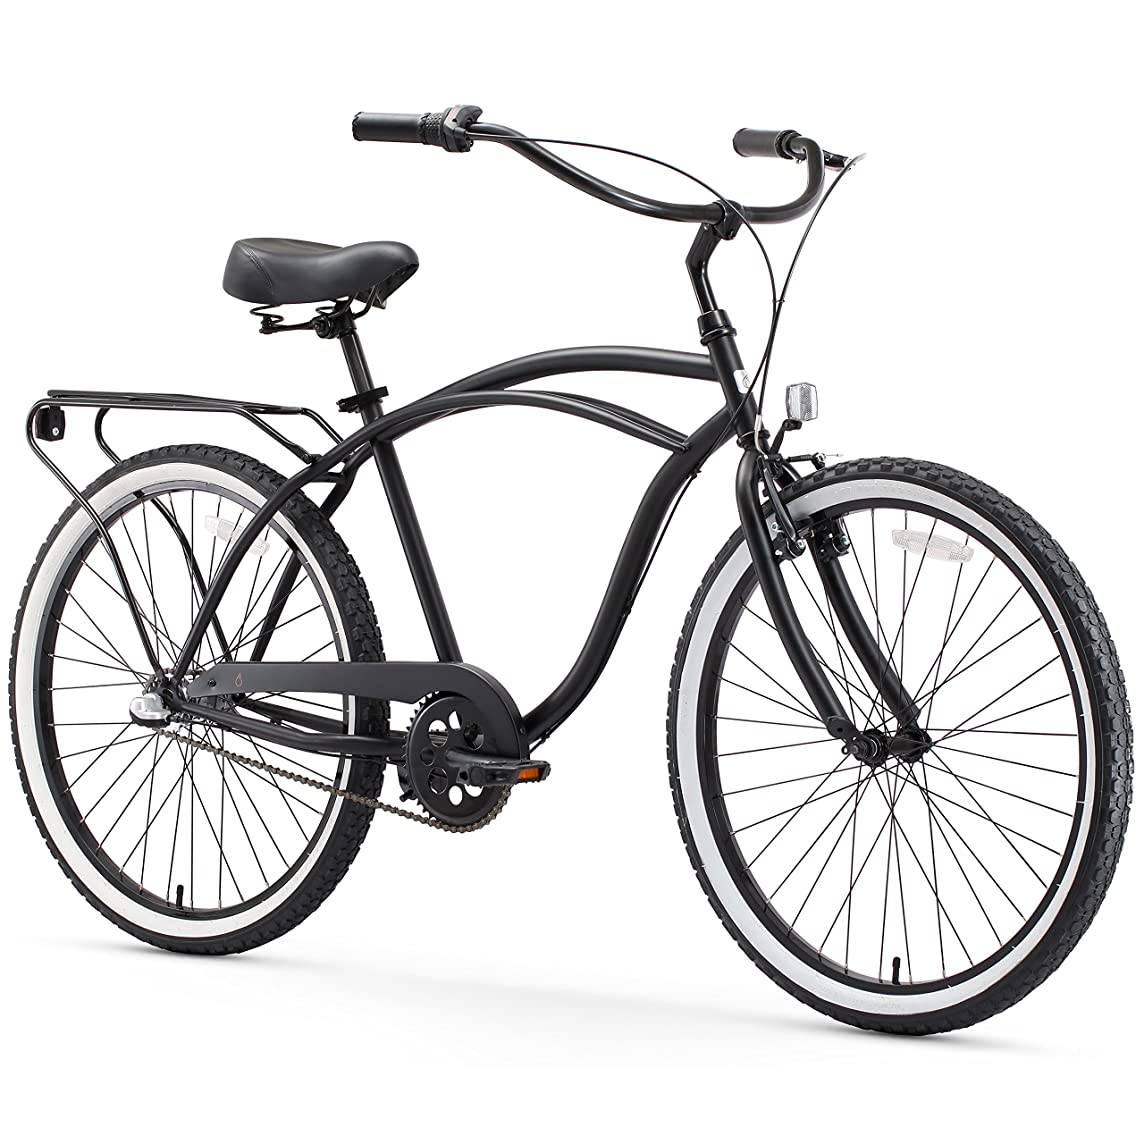 sixthreezero Around the Block Men's Cruiser Bike (24-Inch & 26-Inch)